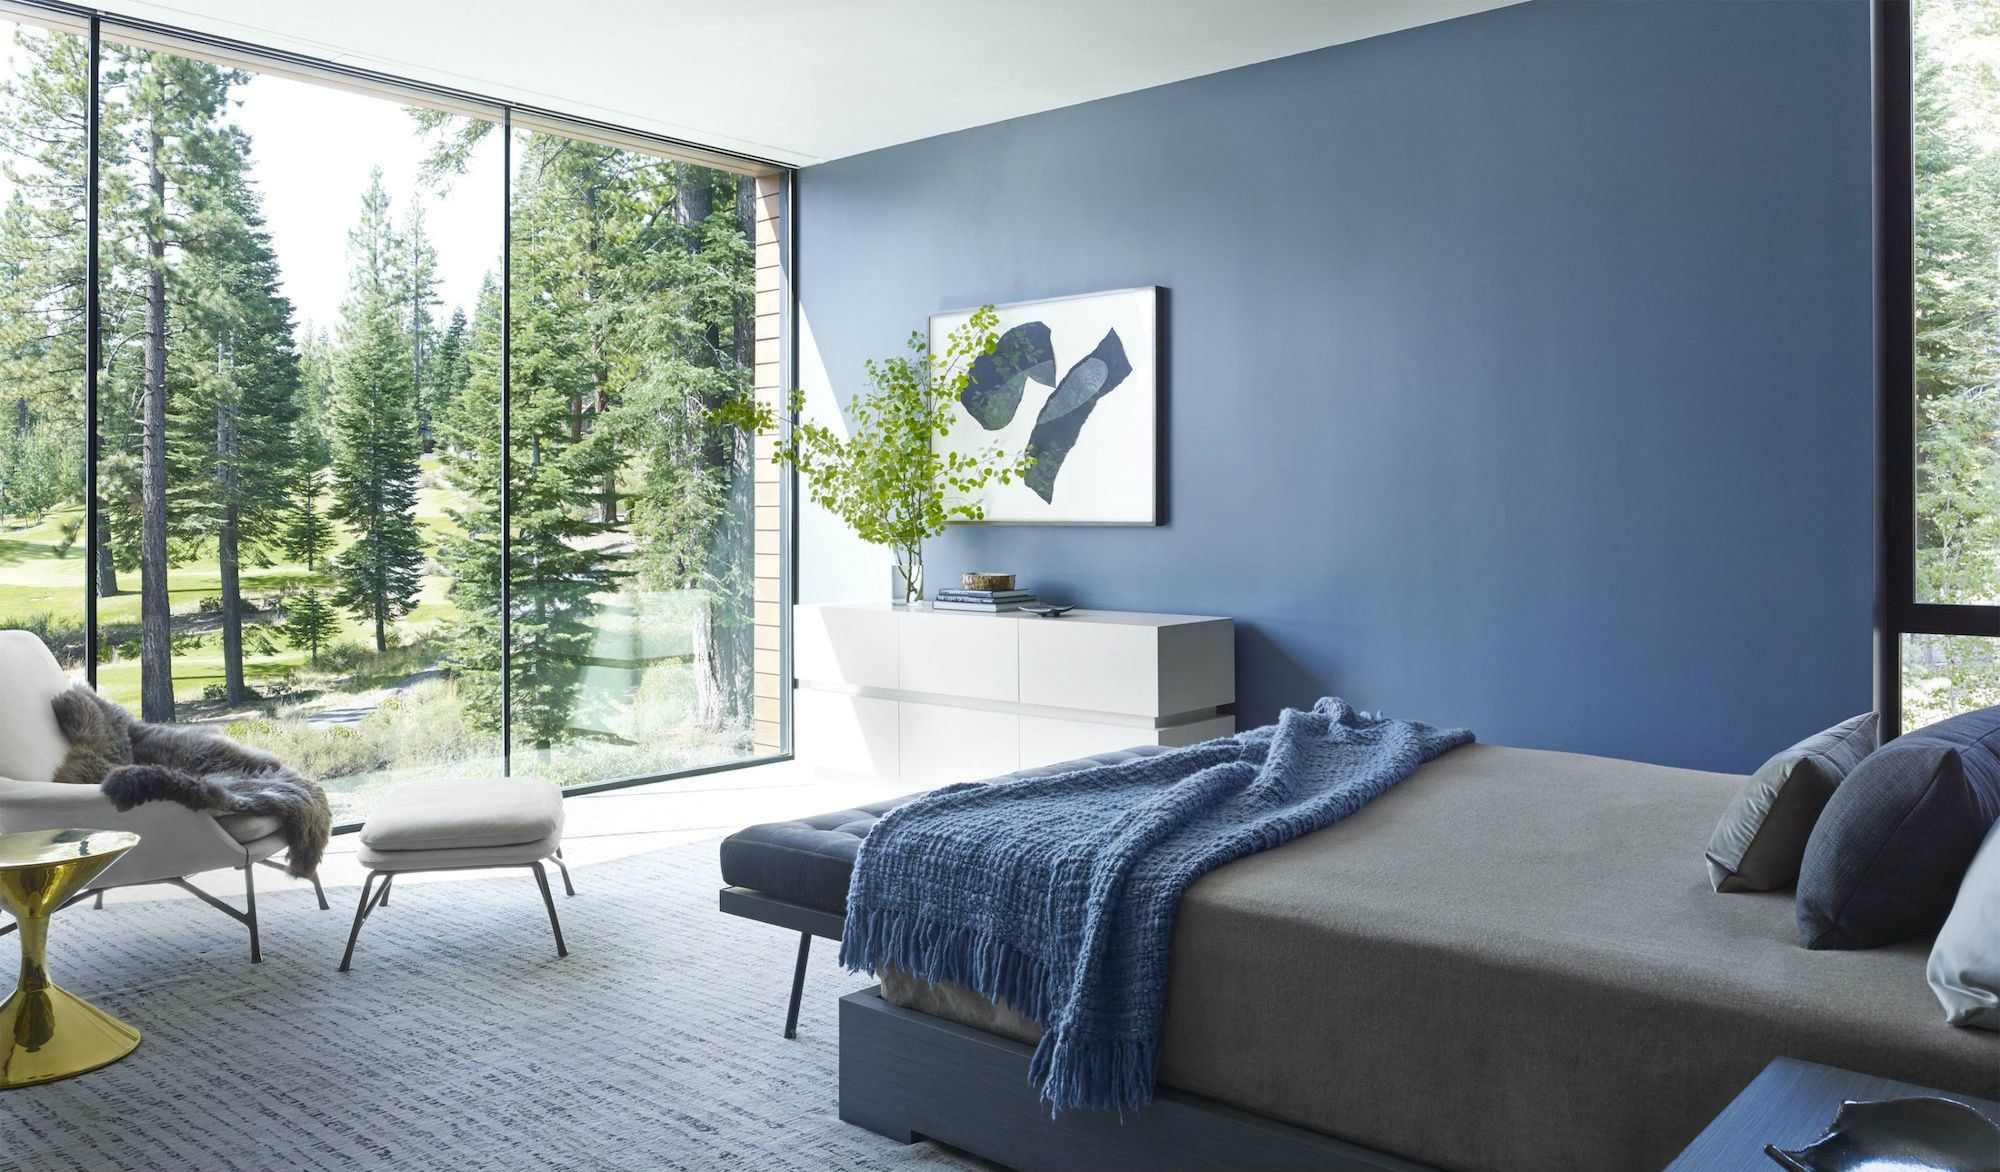 Blue transmits quietness and calm, and because of that, the design world has been awash with all shades of blue, that can go from the calmest of baby blue rooms design to dramatic teal rooms, showing just how versatile blue can be See more at - http://roomdecorideas.eu/the-best-blue-rooms-design-ideas/ #blueroom #summercolor #colortrend #Interiordesign #interiordecor #homedesign #homedcor #livingroom #bedroom #bathroom #blue